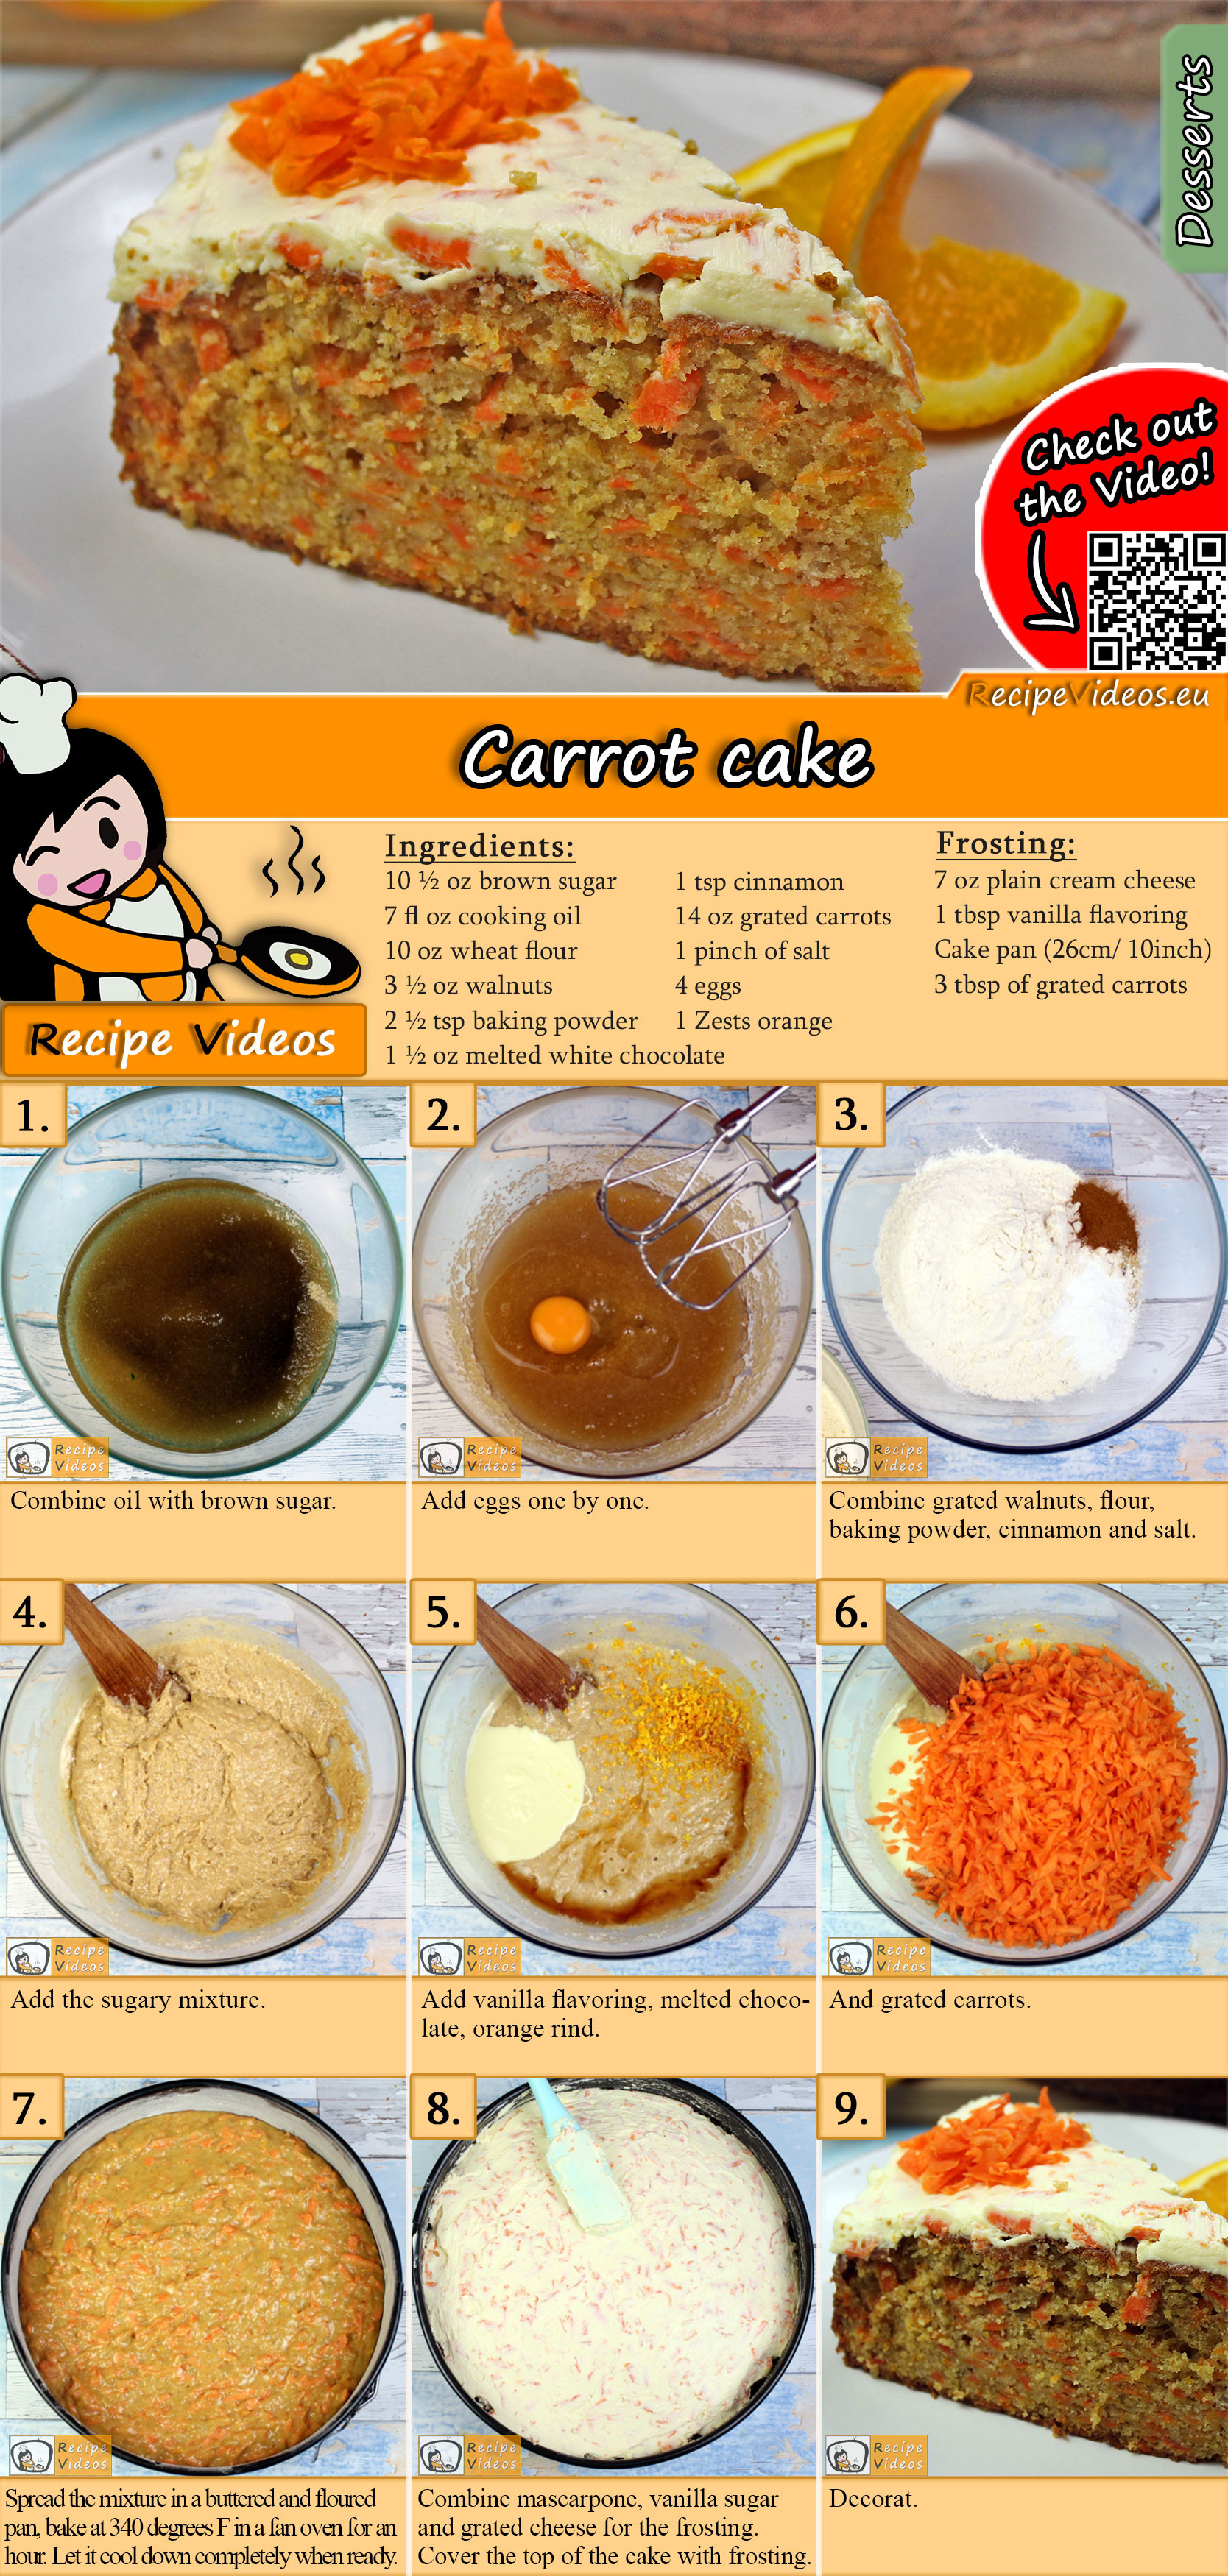 Carrot cake recipe with video